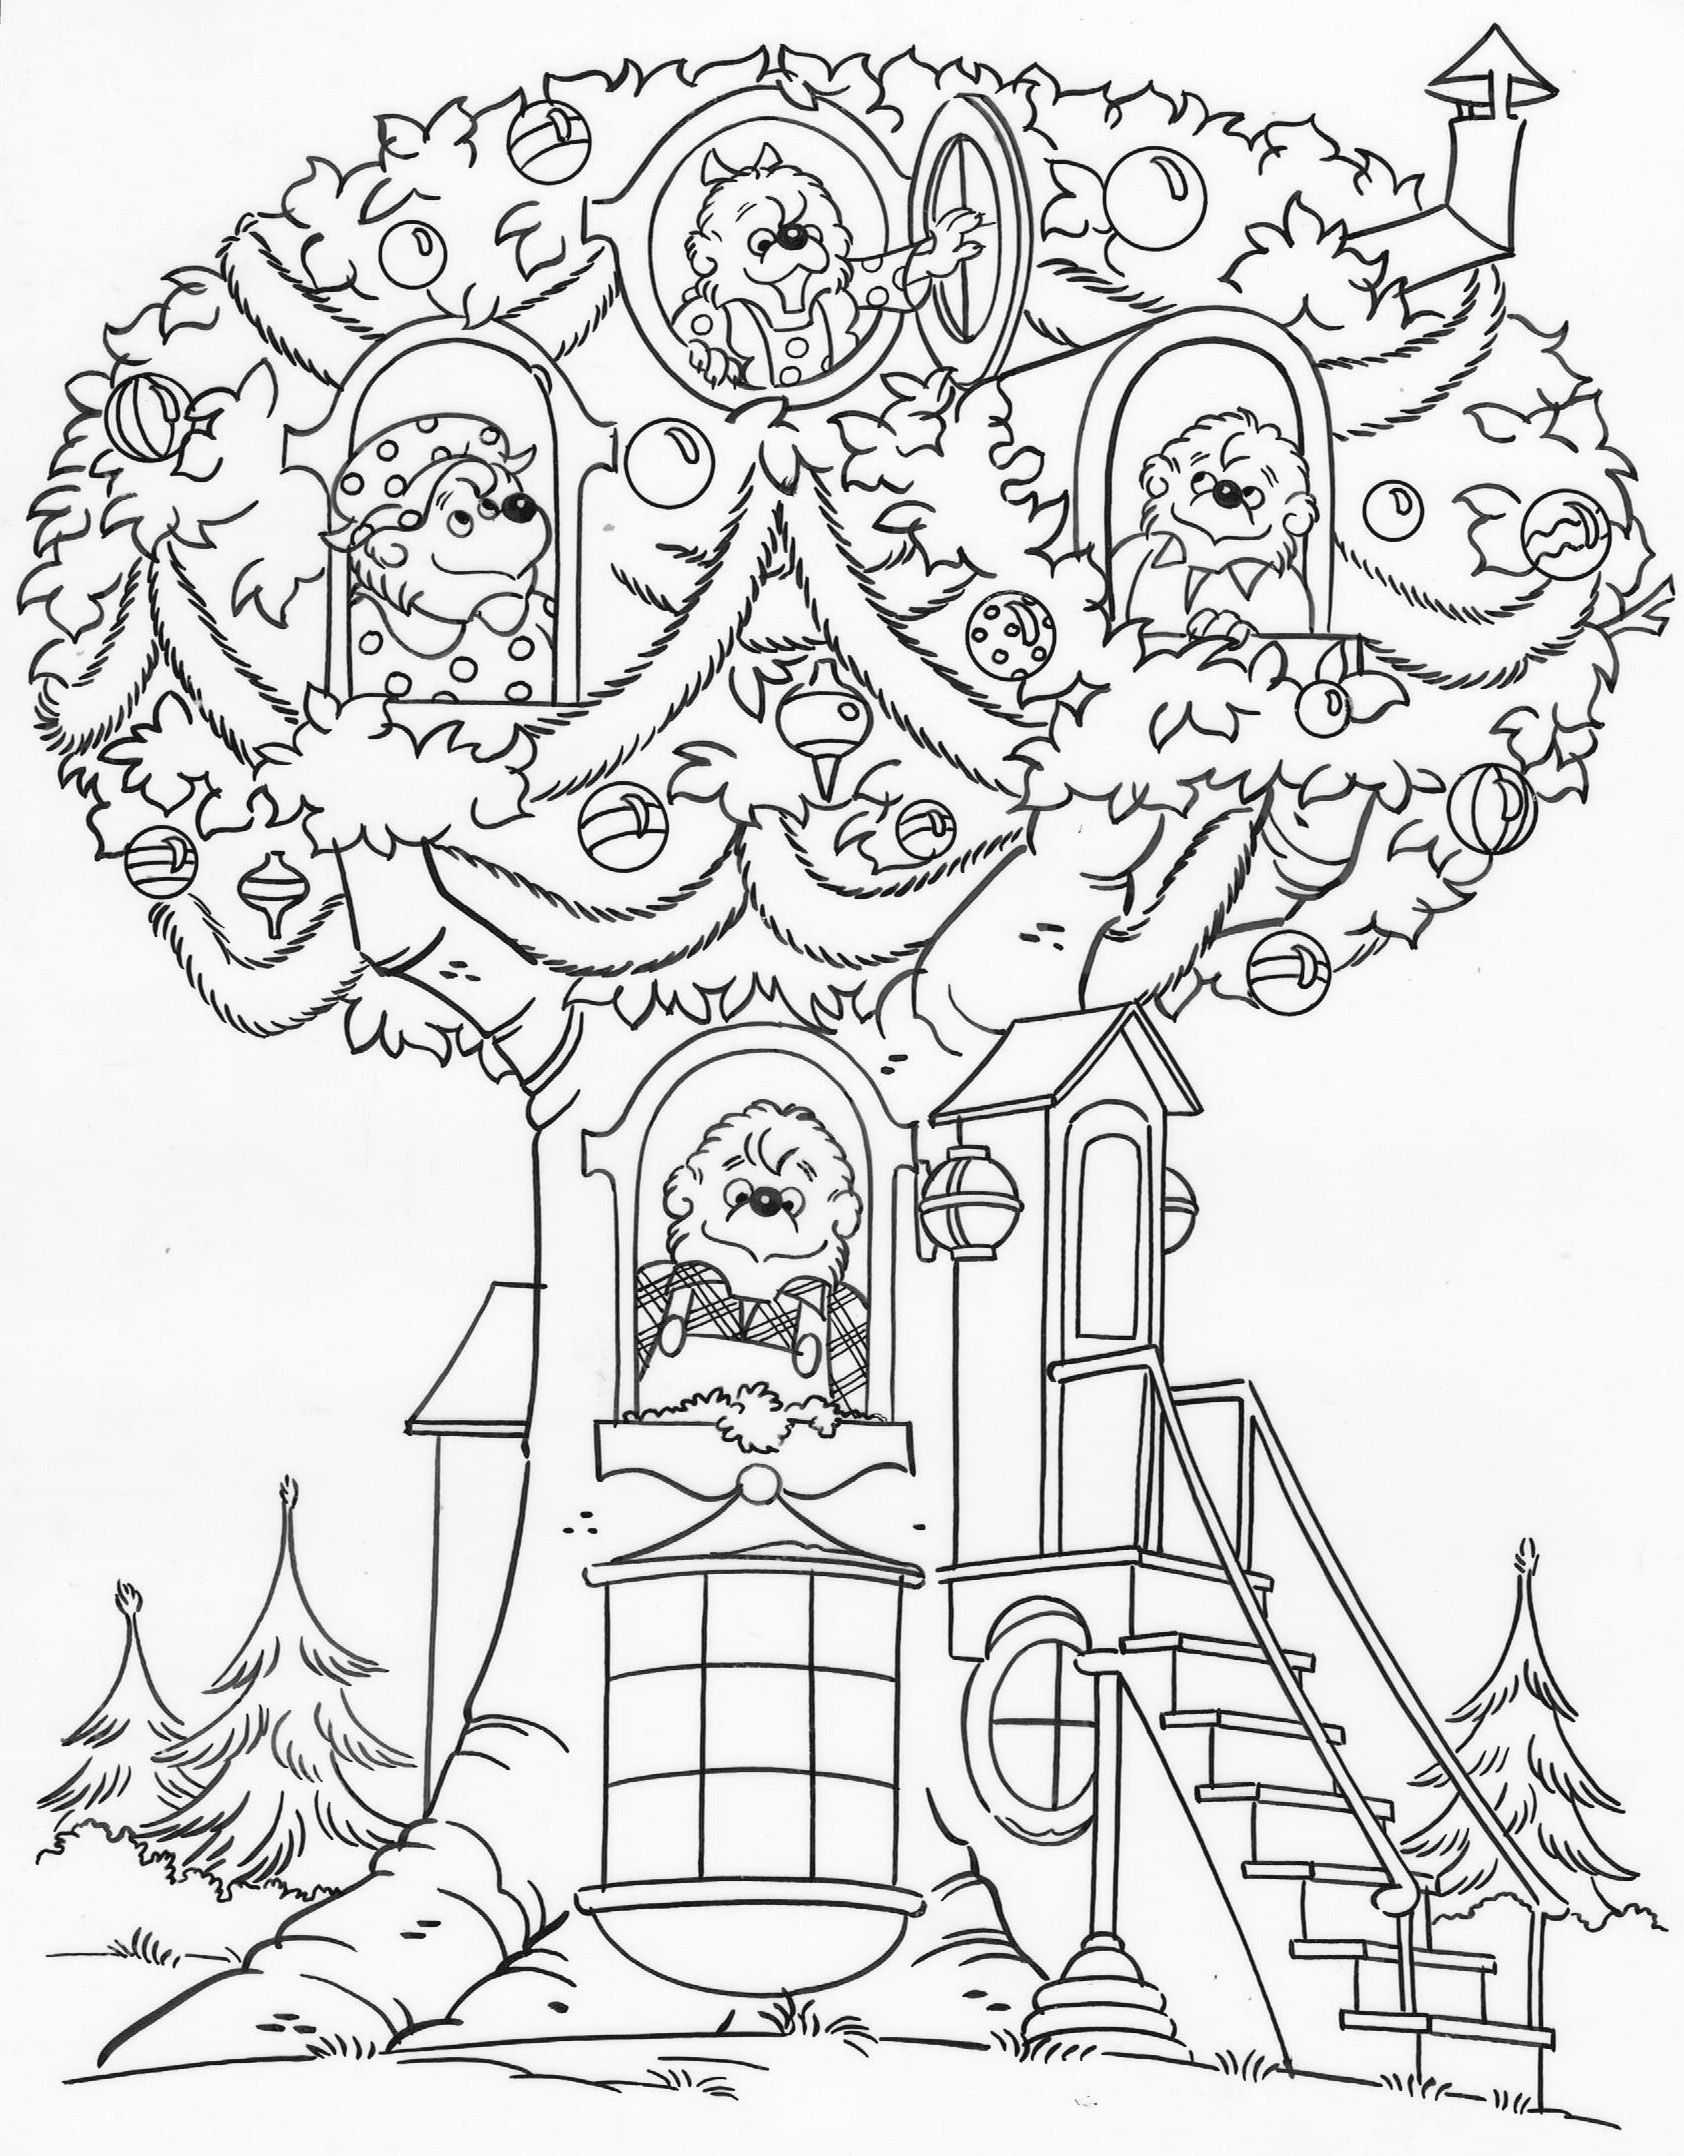 Berenstain Bears Coloring Pages At Getdrawings